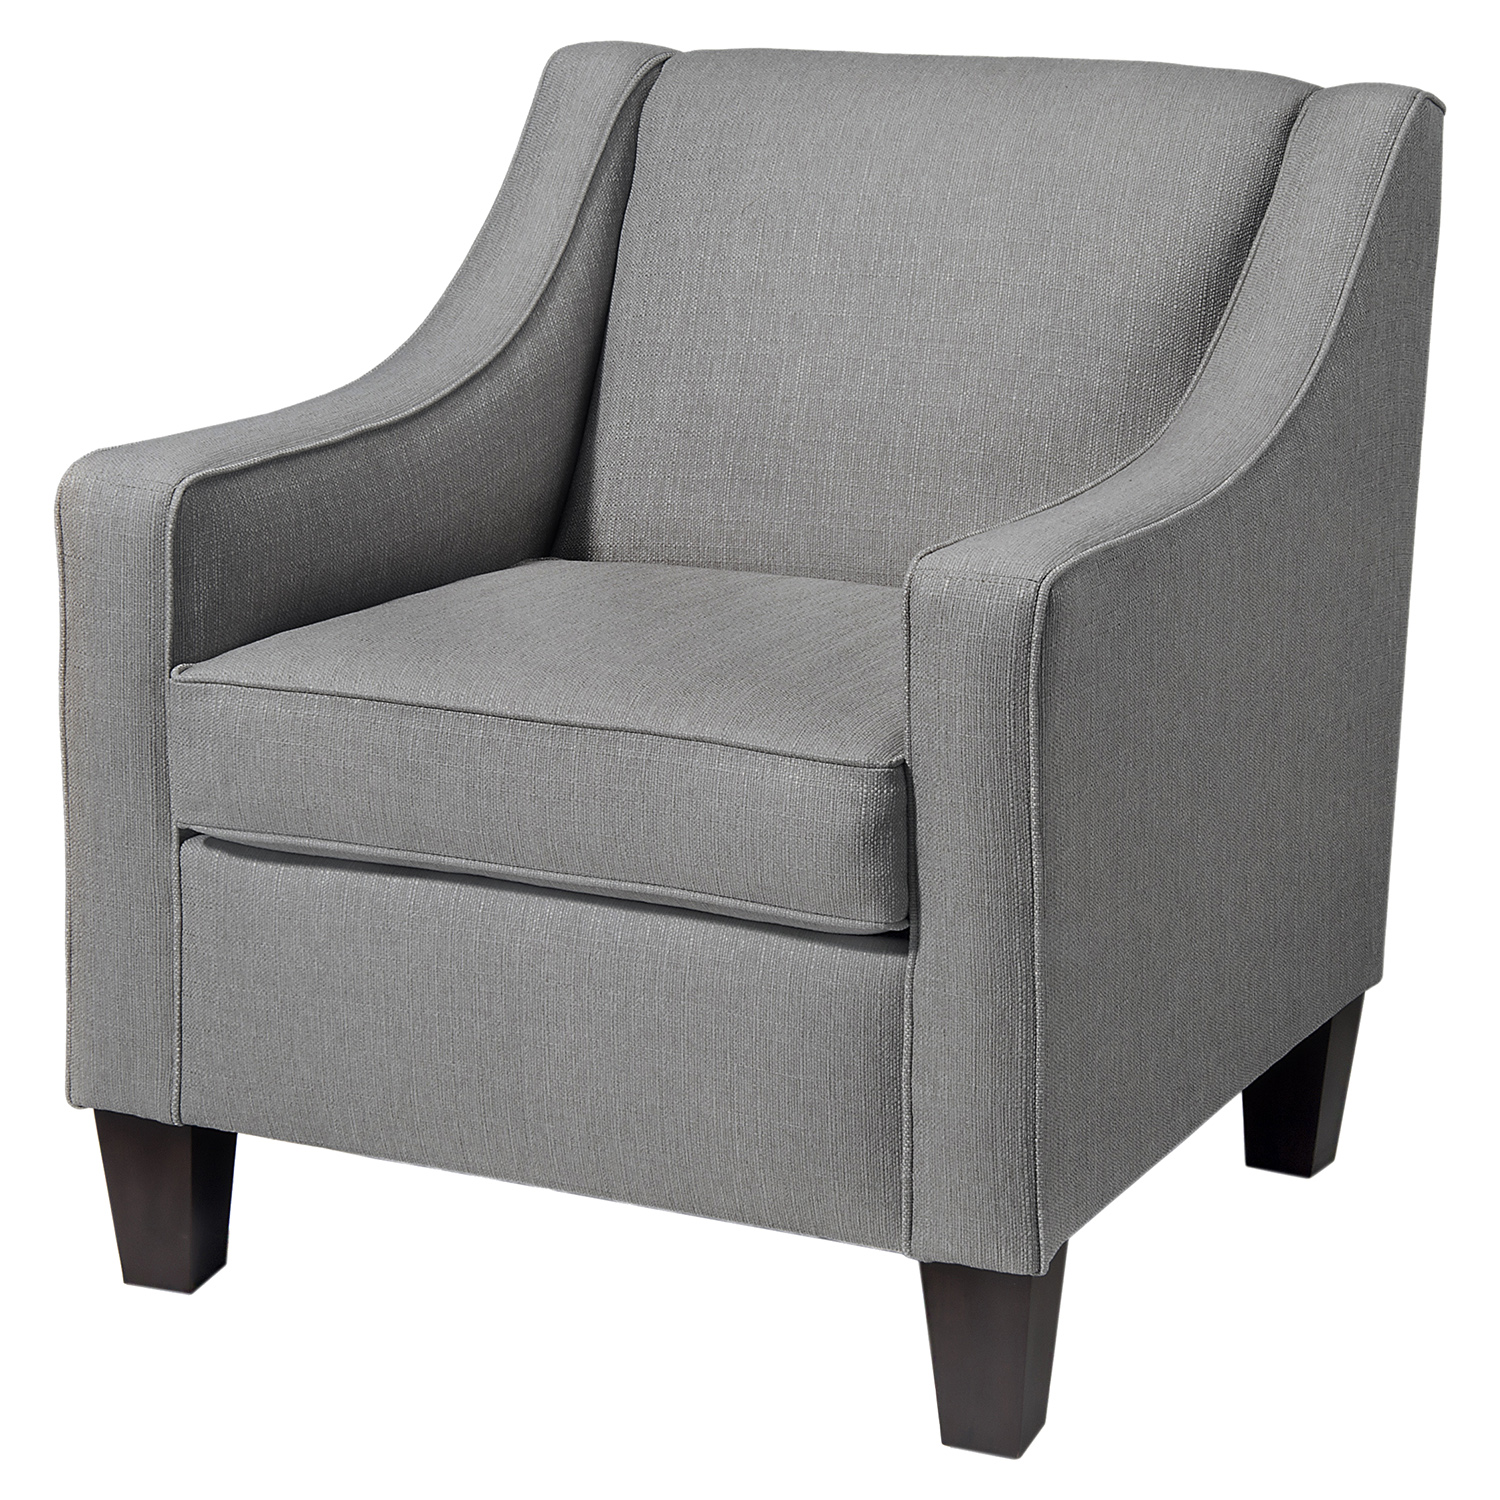 Ellery Club Chair - Granite